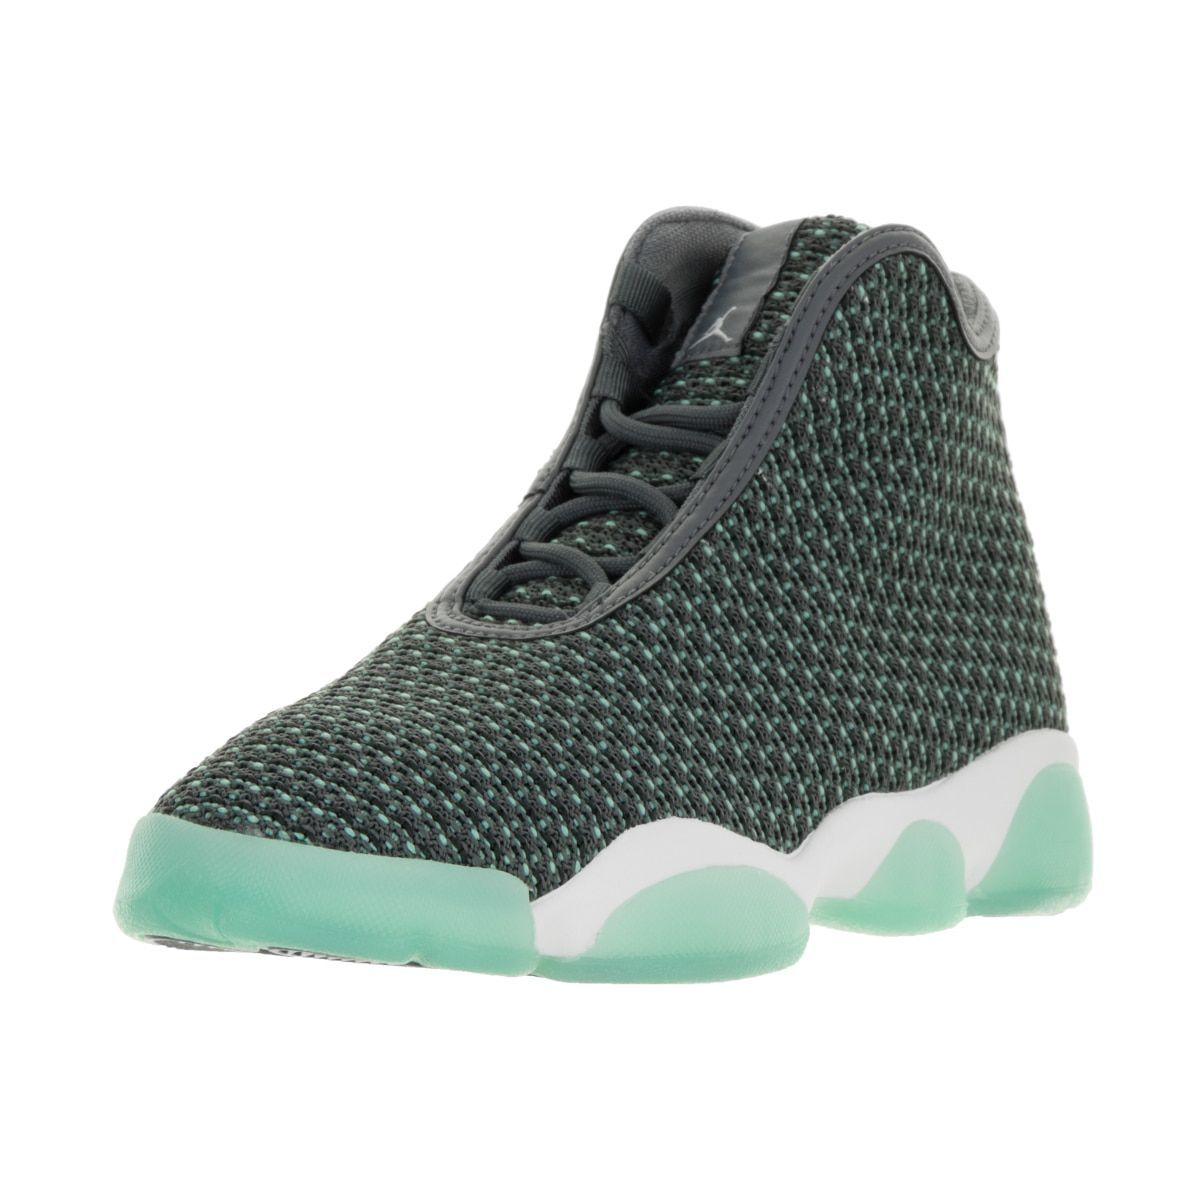 best website 31390 1a7e6 Nike Jordan Kids  Jordan Horizon BG Dark, White, and Turquoise Basketball  Shoes